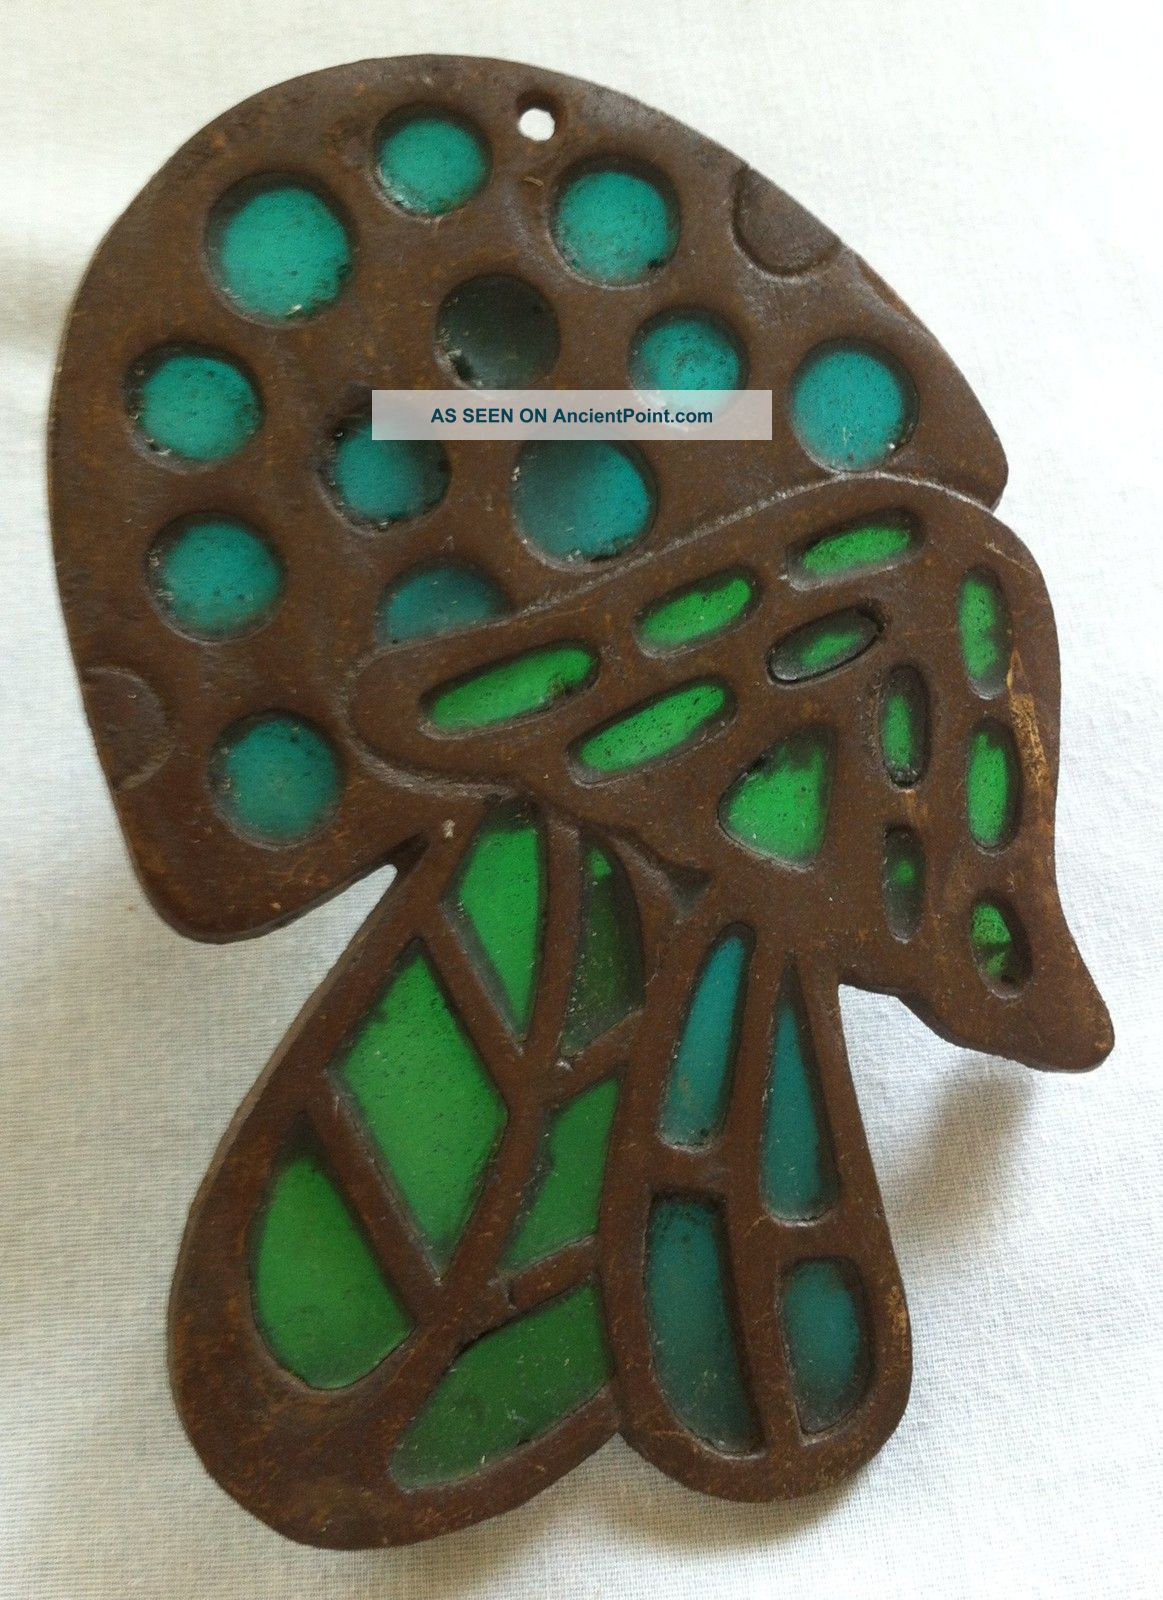 70 ' S Stained Glass Mushroom Trivet (blue & Green Glass) Art Deco Design Trivets photo